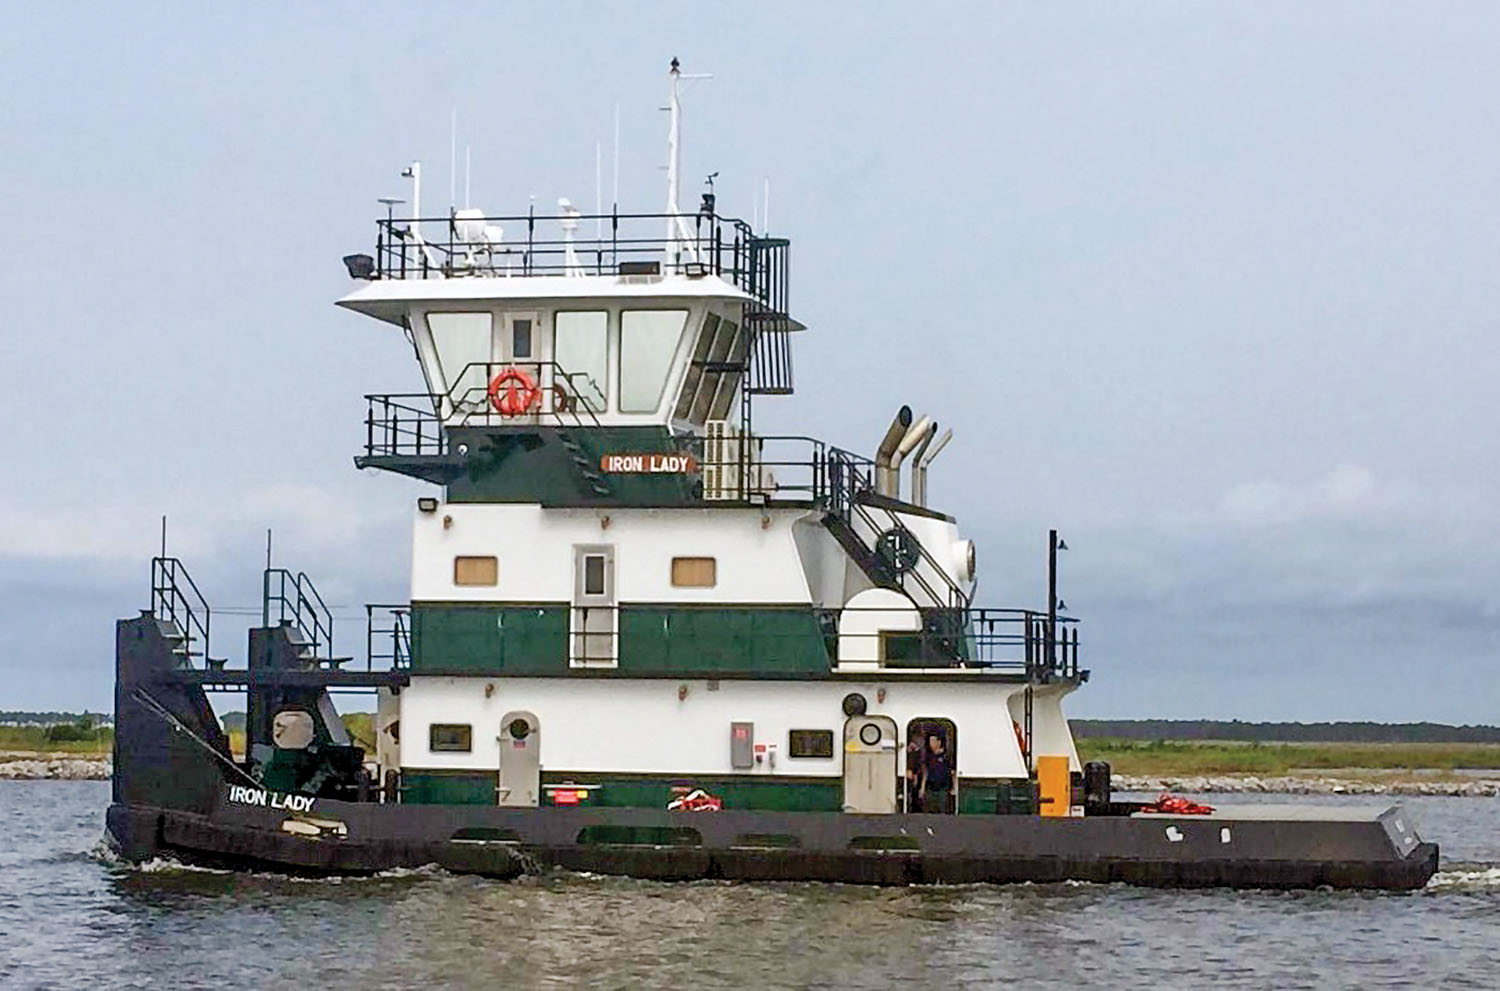 The Iron Lady is the first of four towboats for Plimsoll. (Photo courtesy of Master Marine)